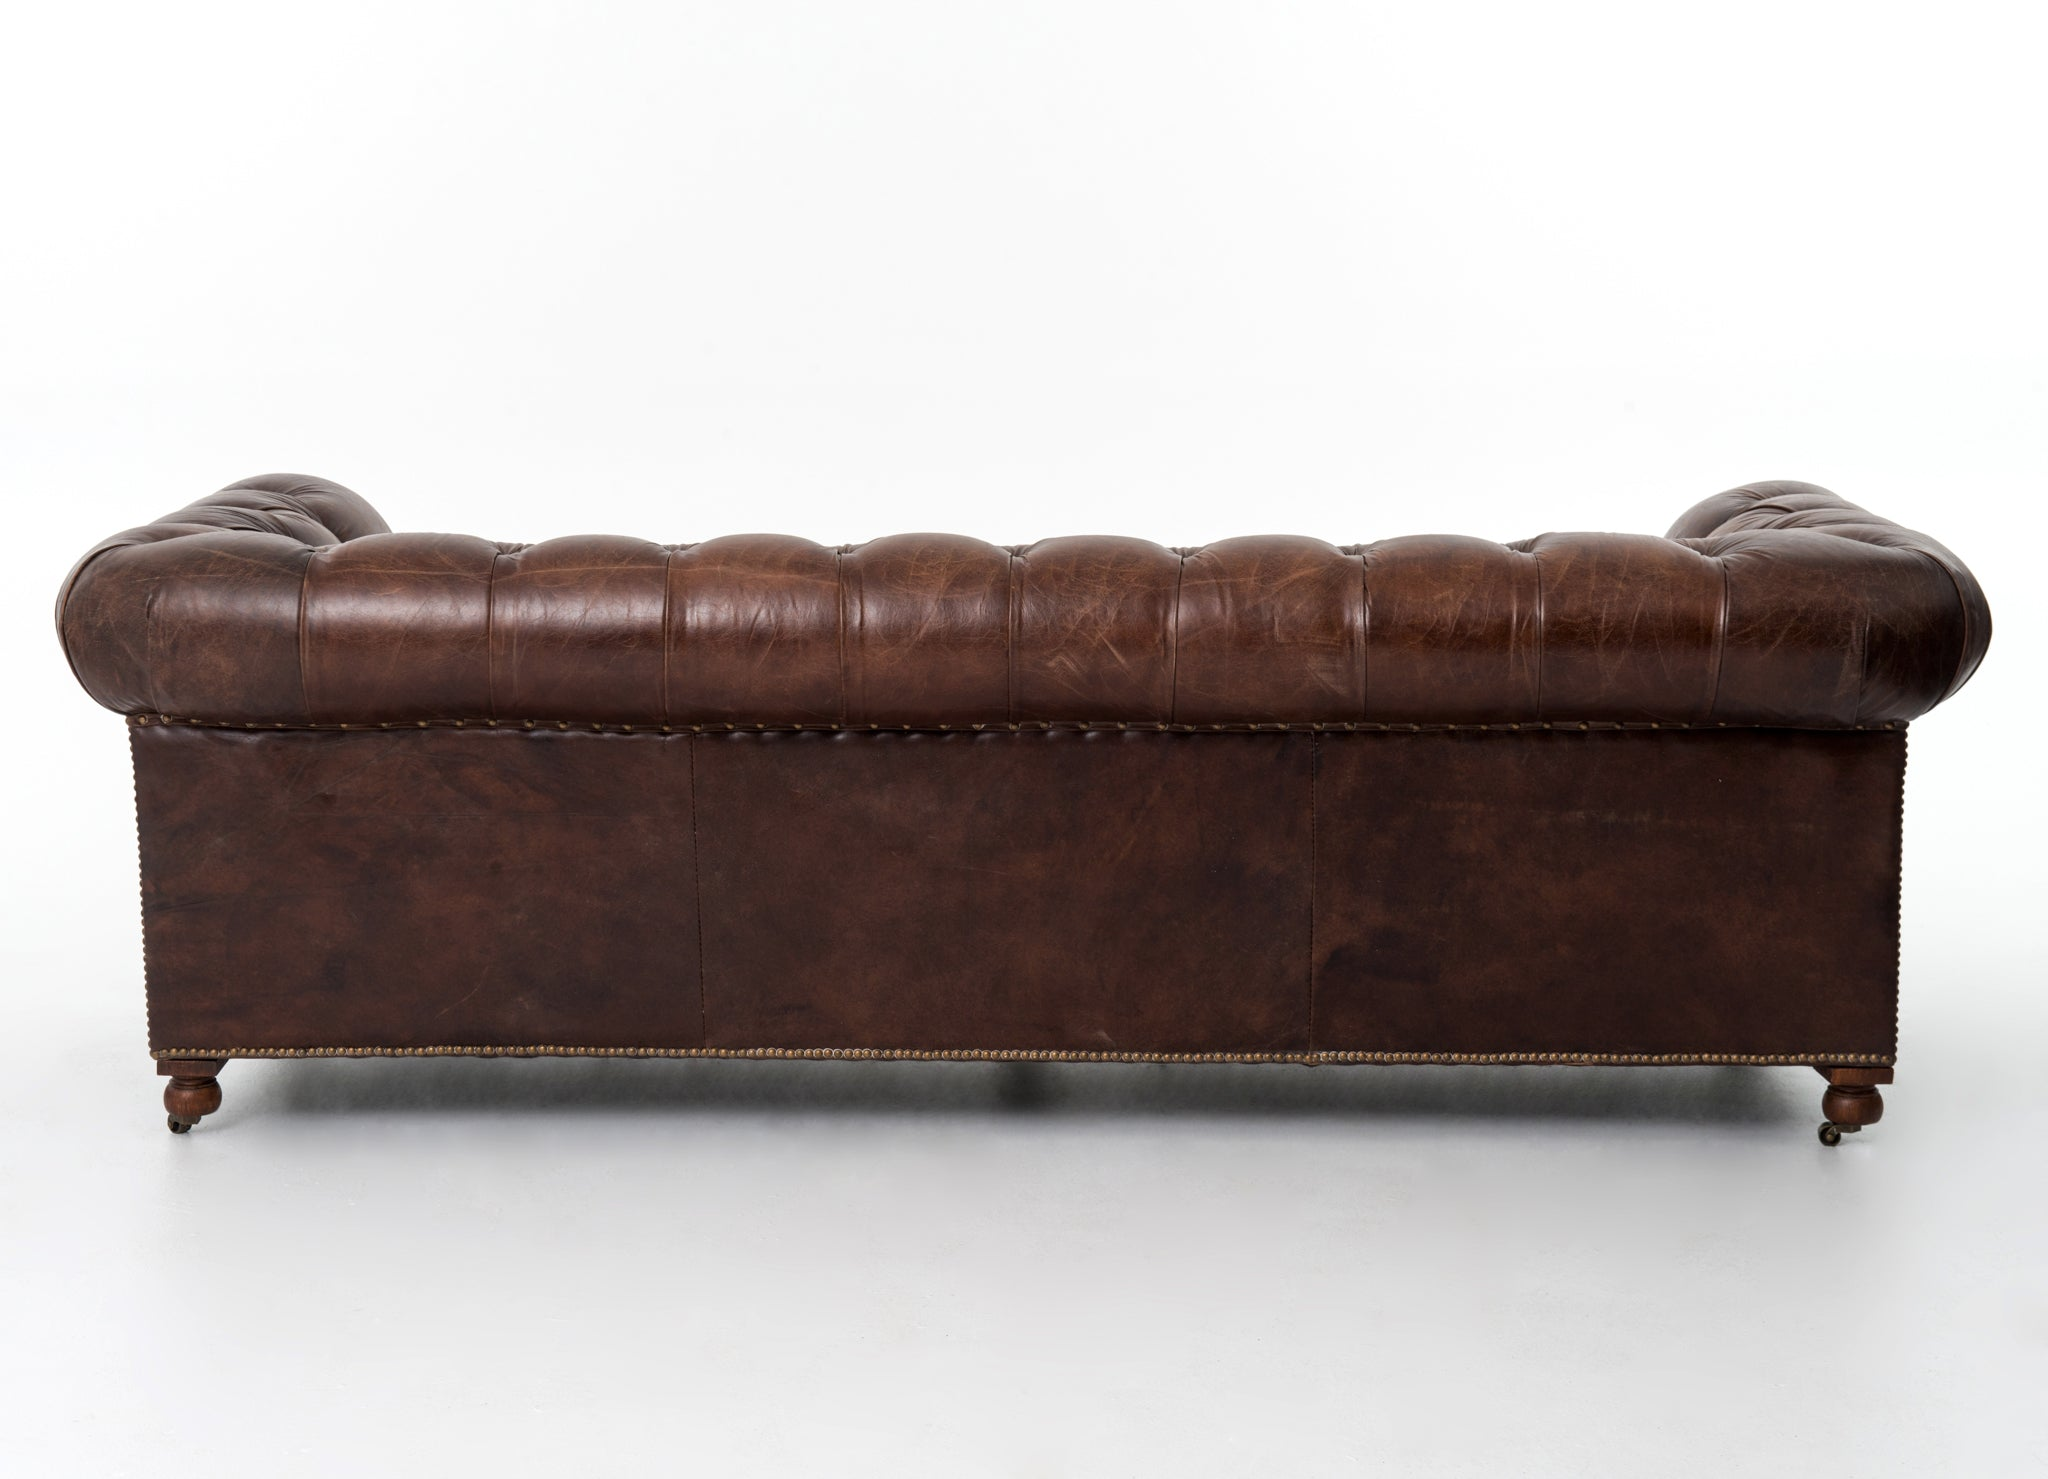 Chesterfield Style Button Tufted Leather Sofa Vintage Brown 95.5""